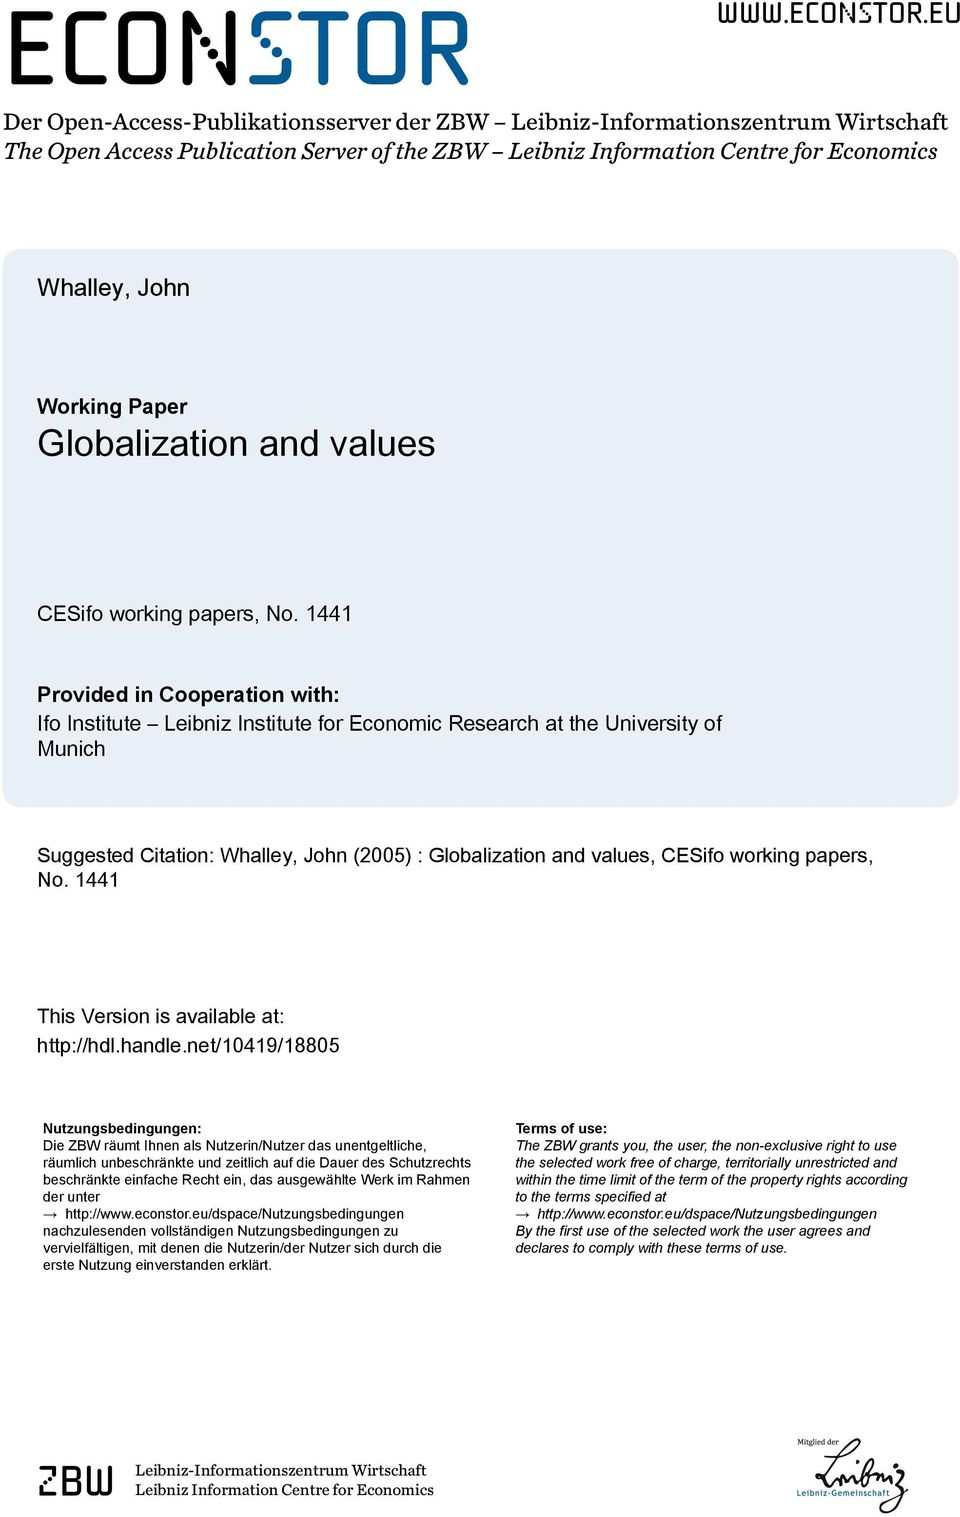 eu Der Open-Access-Publikationsserver der ZBW Leibniz-Informationszentrum Wirtschaft The Open Access Publication Server of the ZBW Leibniz Information Centre for Economics Whalley, John Working Paper